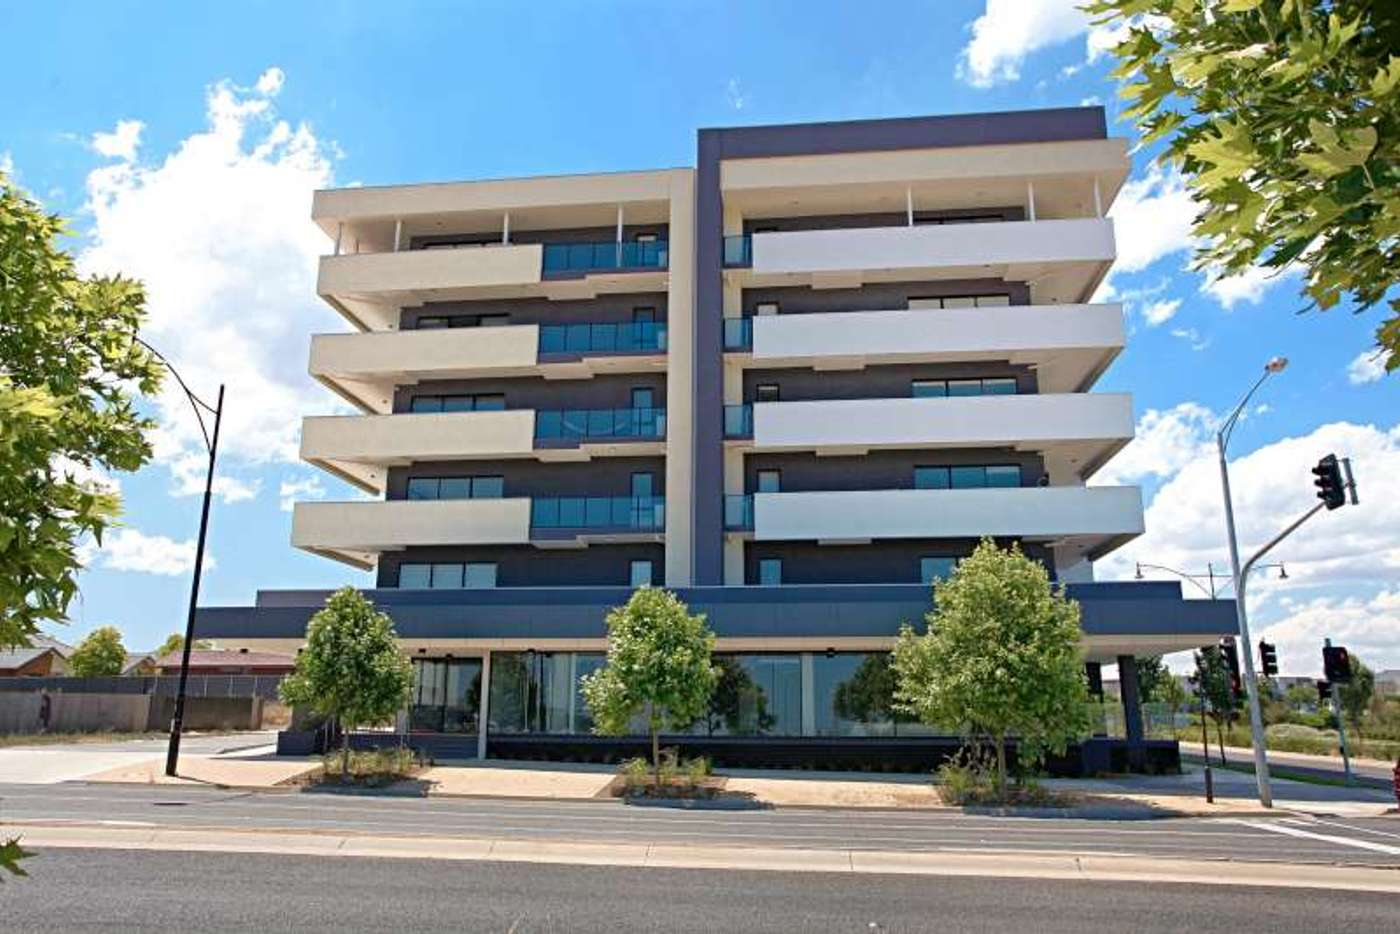 Main view of Homely apartment listing, 145/73 Lake Street, Caroline Springs VIC 3023